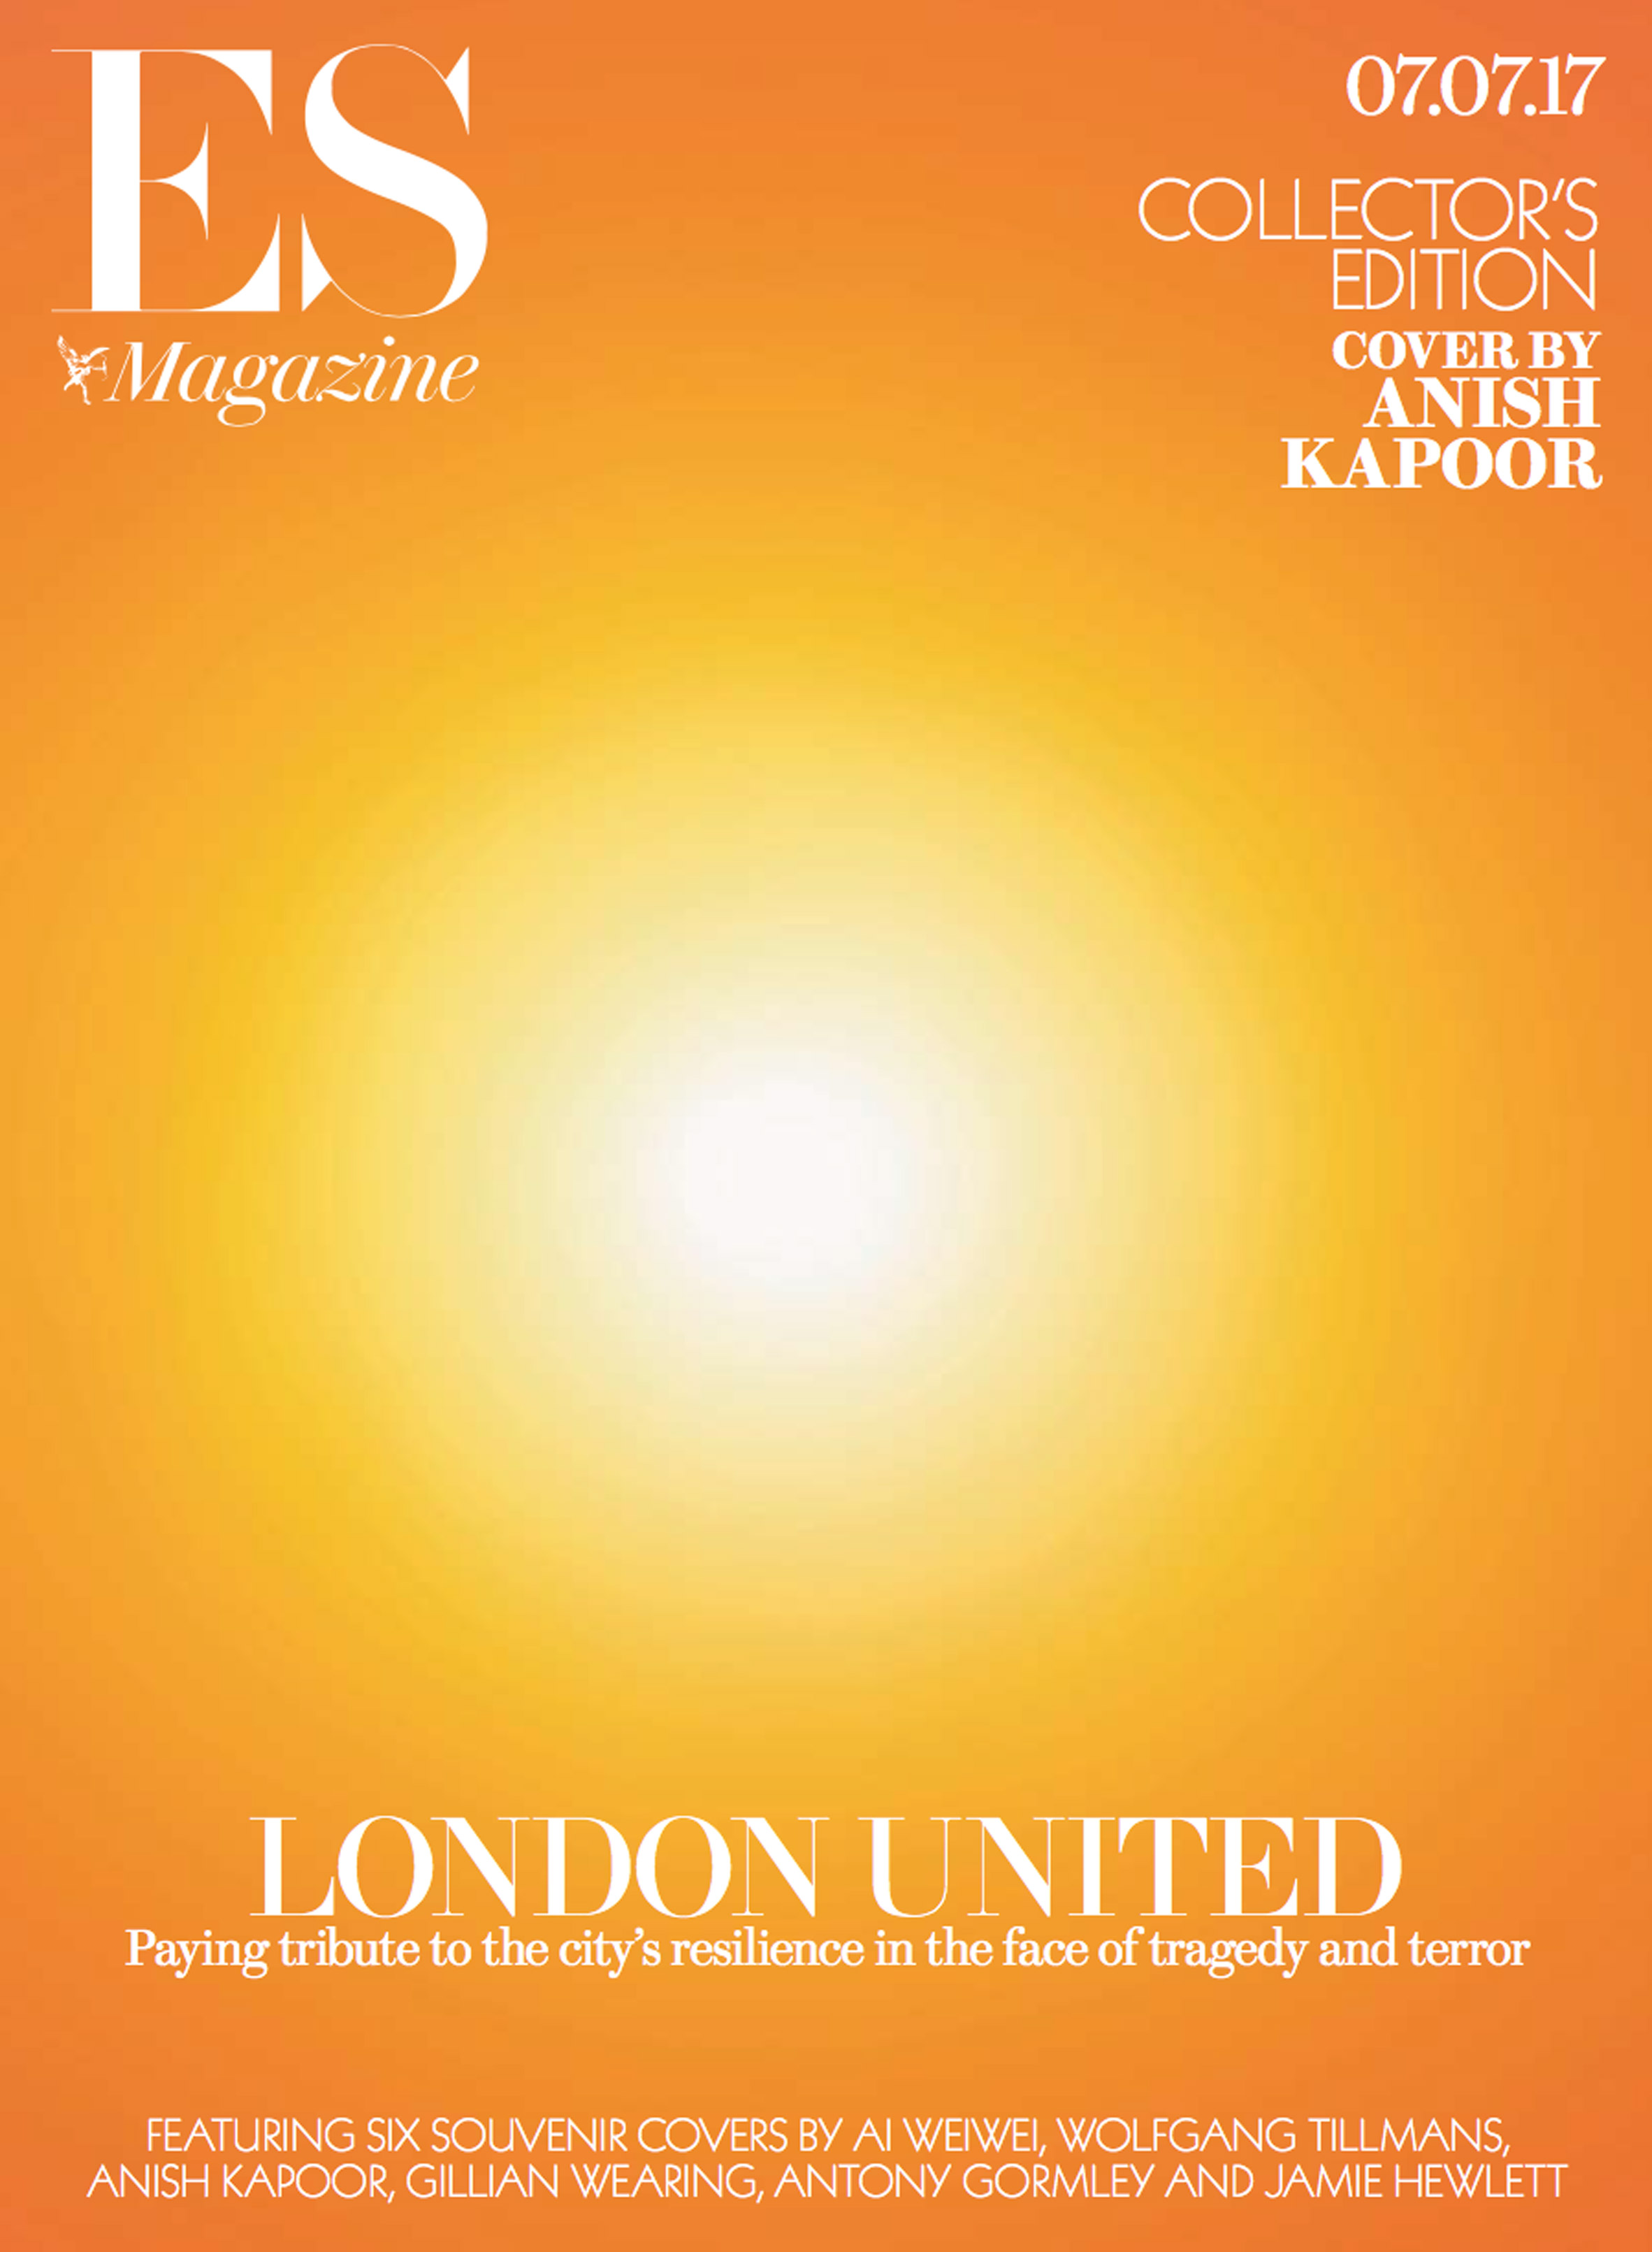 Artists including Anish Kapoor and Ai Weiwei create magazine covers dedicated to recent London tragedies